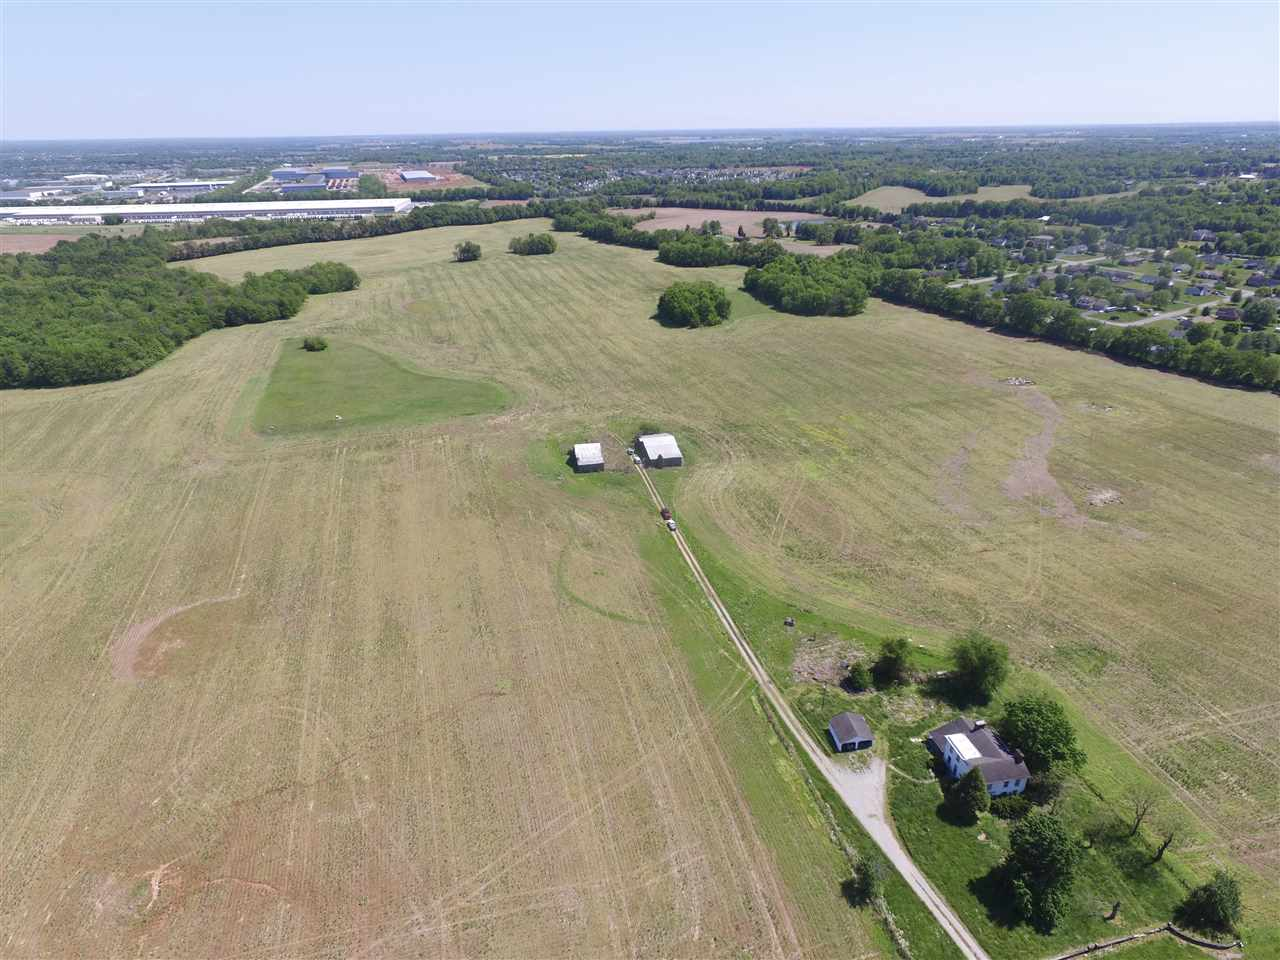 165 Acres Russellville Road 1.6 miles from the Natcher Parkway Interstate 165.  83.4 acres are zoned with 35.1 acres Light Industrial, 16.3 acres zone Highway Business, 19.9 acres zoned RM-4 high density multi-family, 12.1 acres zoned RS-1B residential single family, the balance of 81.6 acres unzoned.     Easy access to utilities.